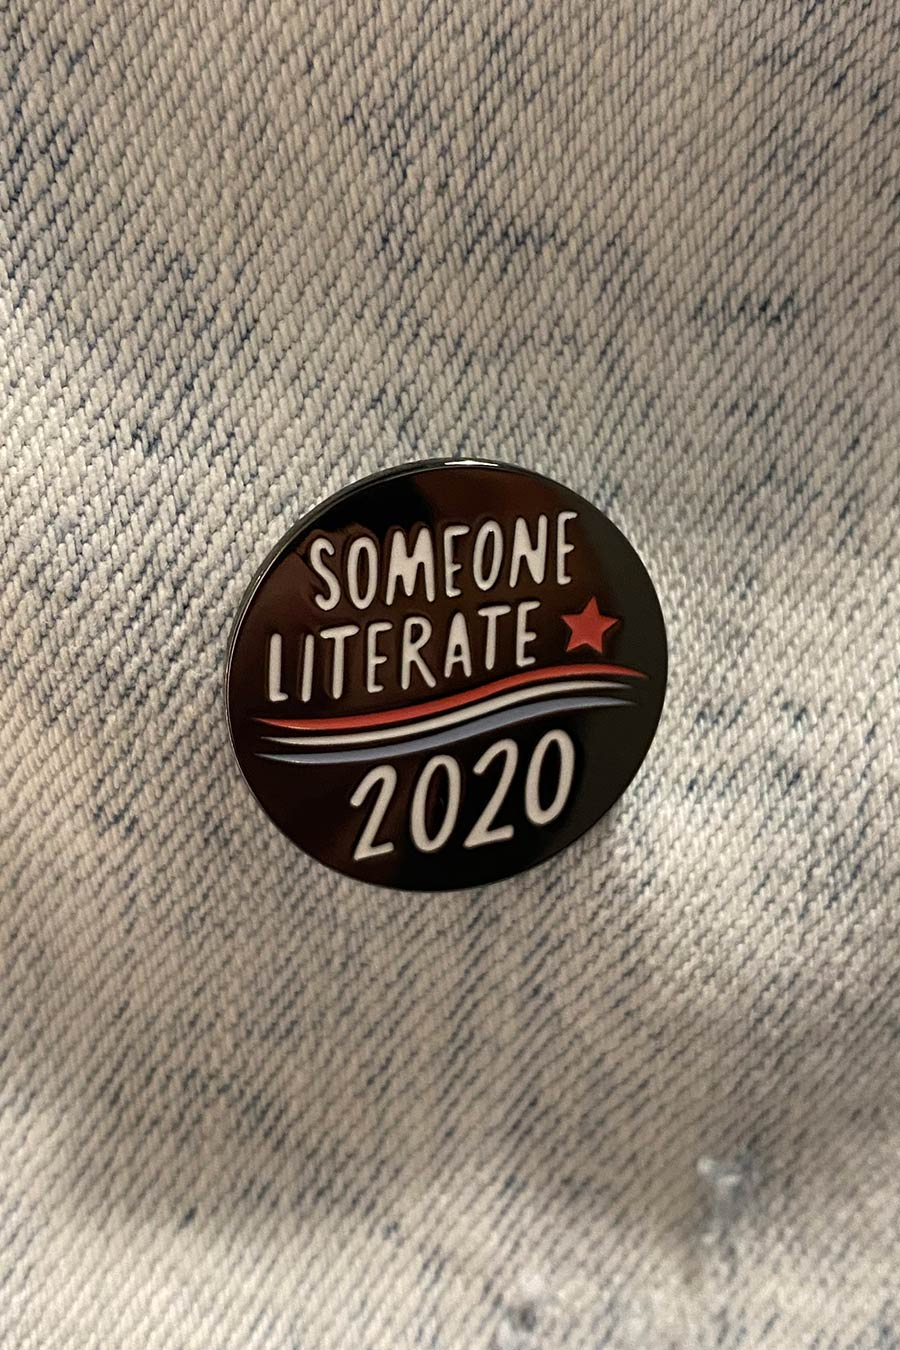 Someone Literate 2020 Pin